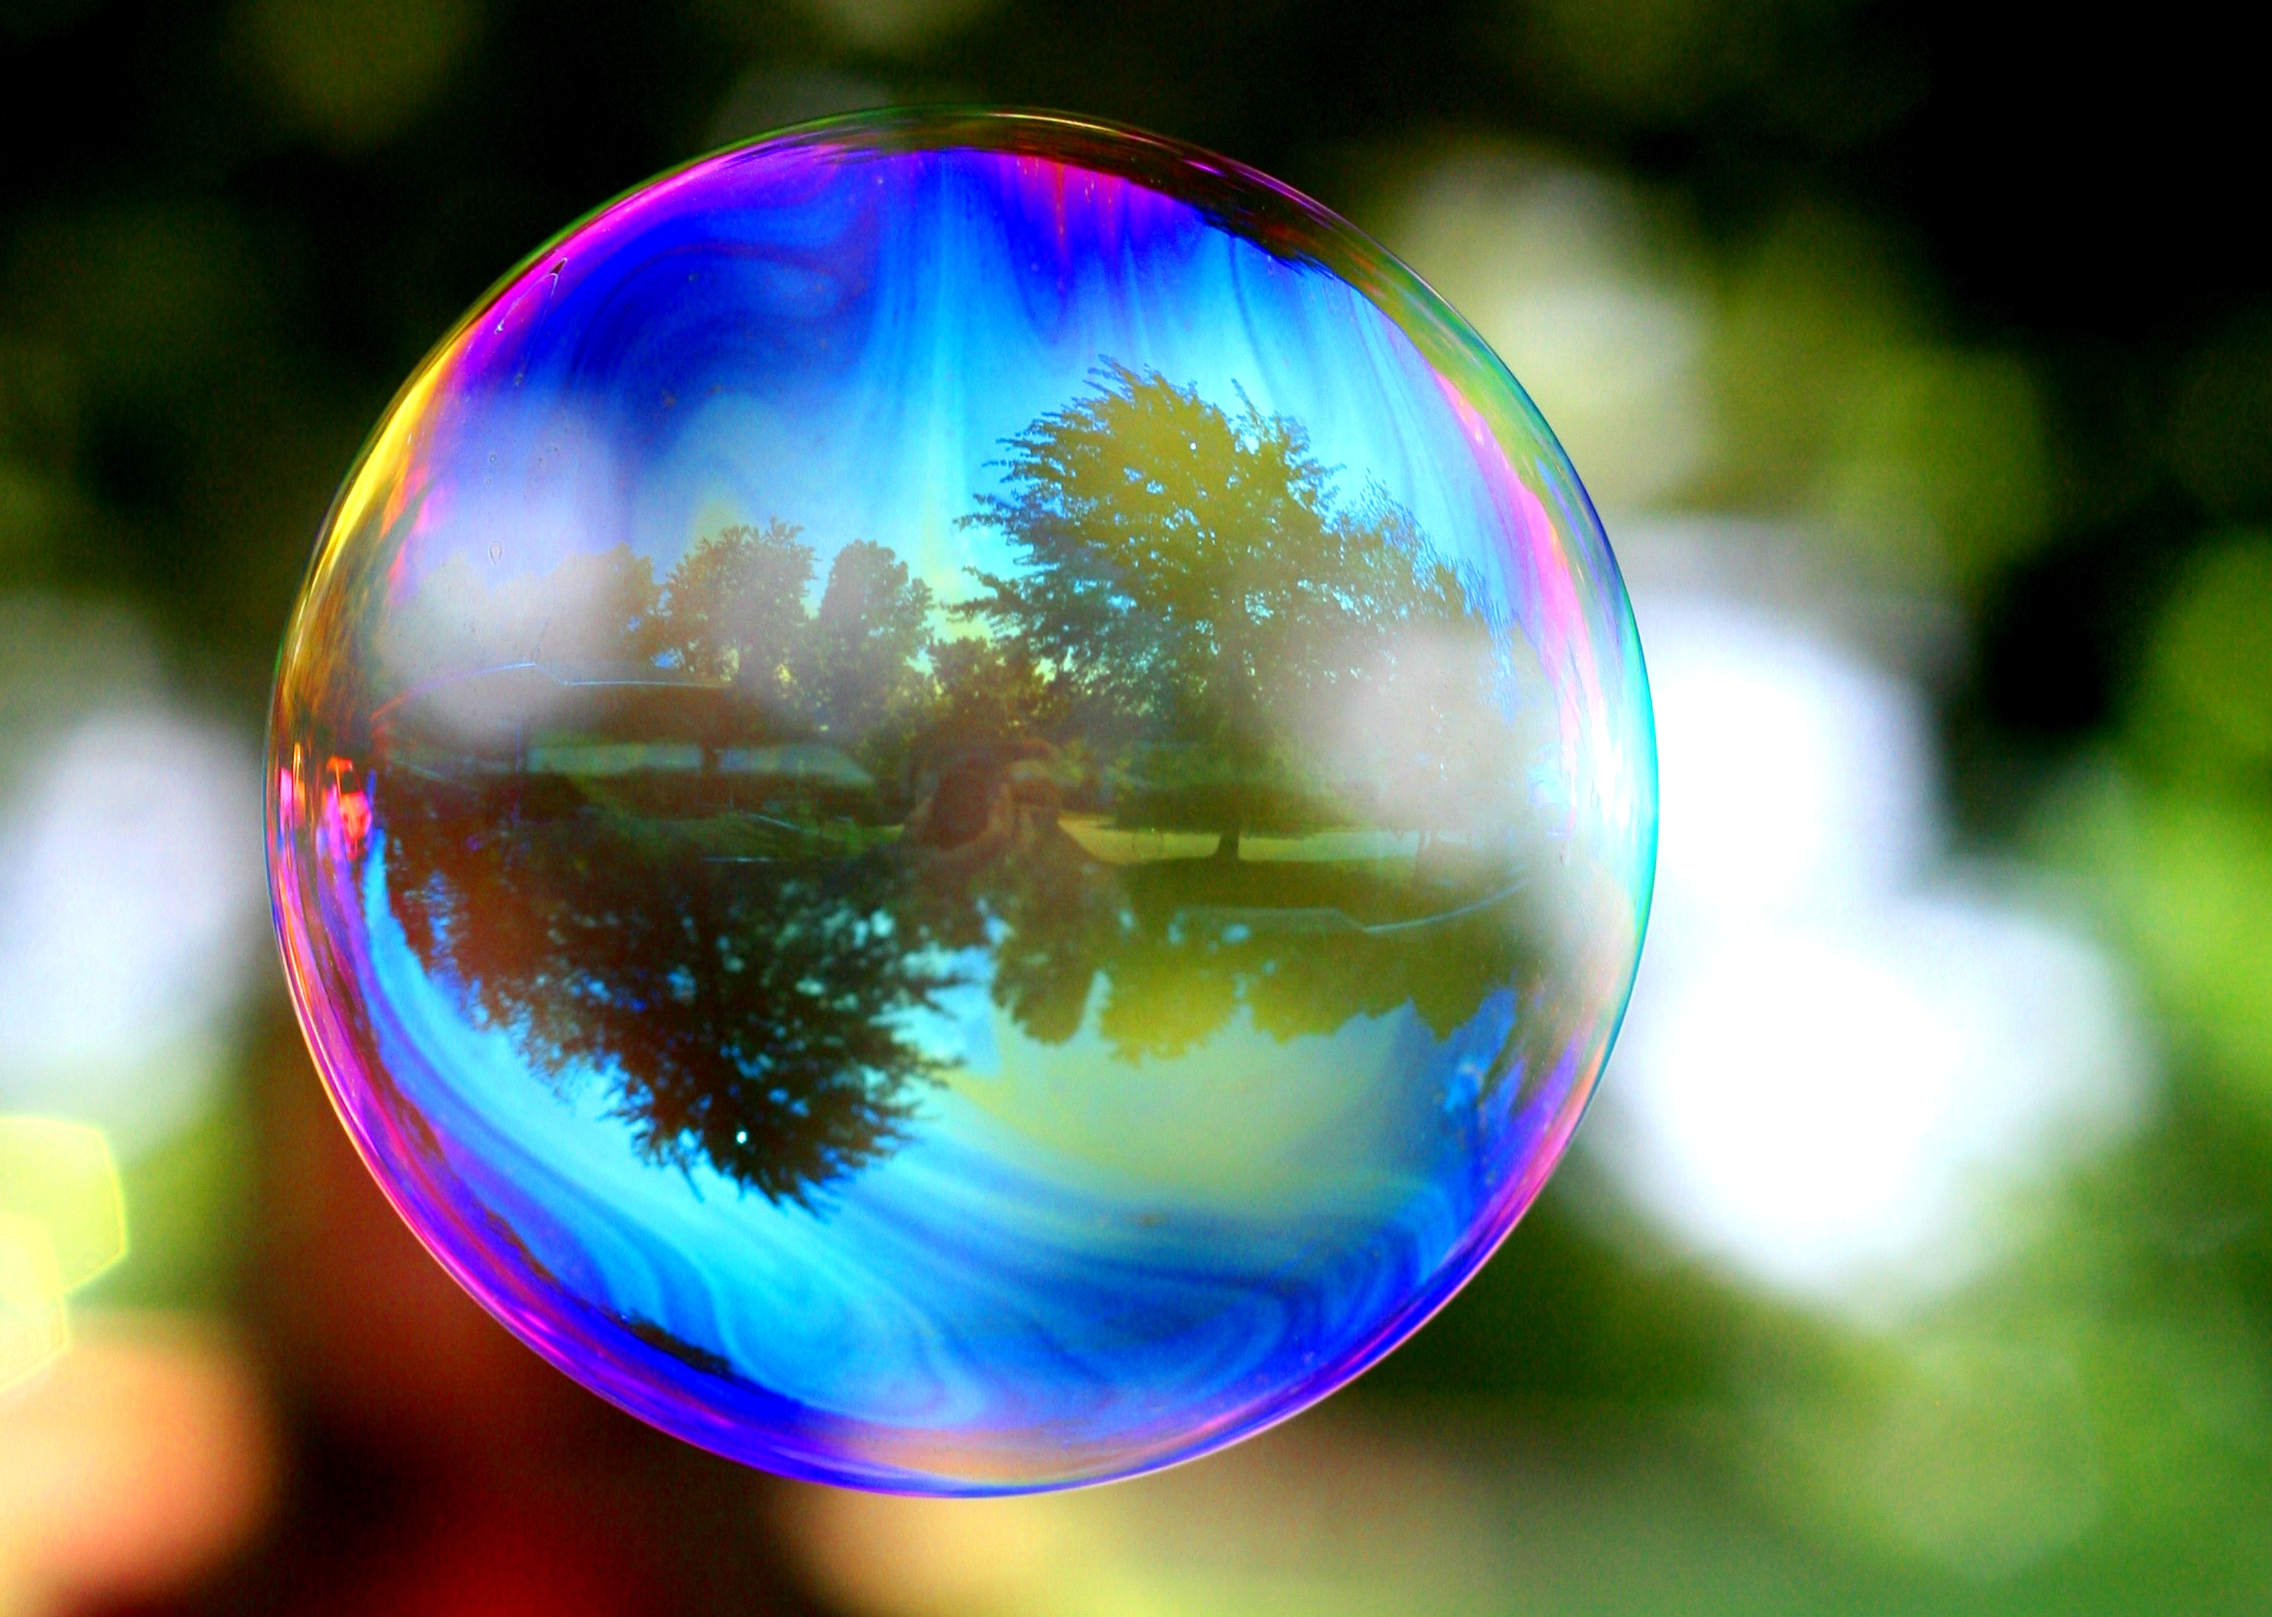 Trees Reflected in a Soap Bubble 597.67 Kb